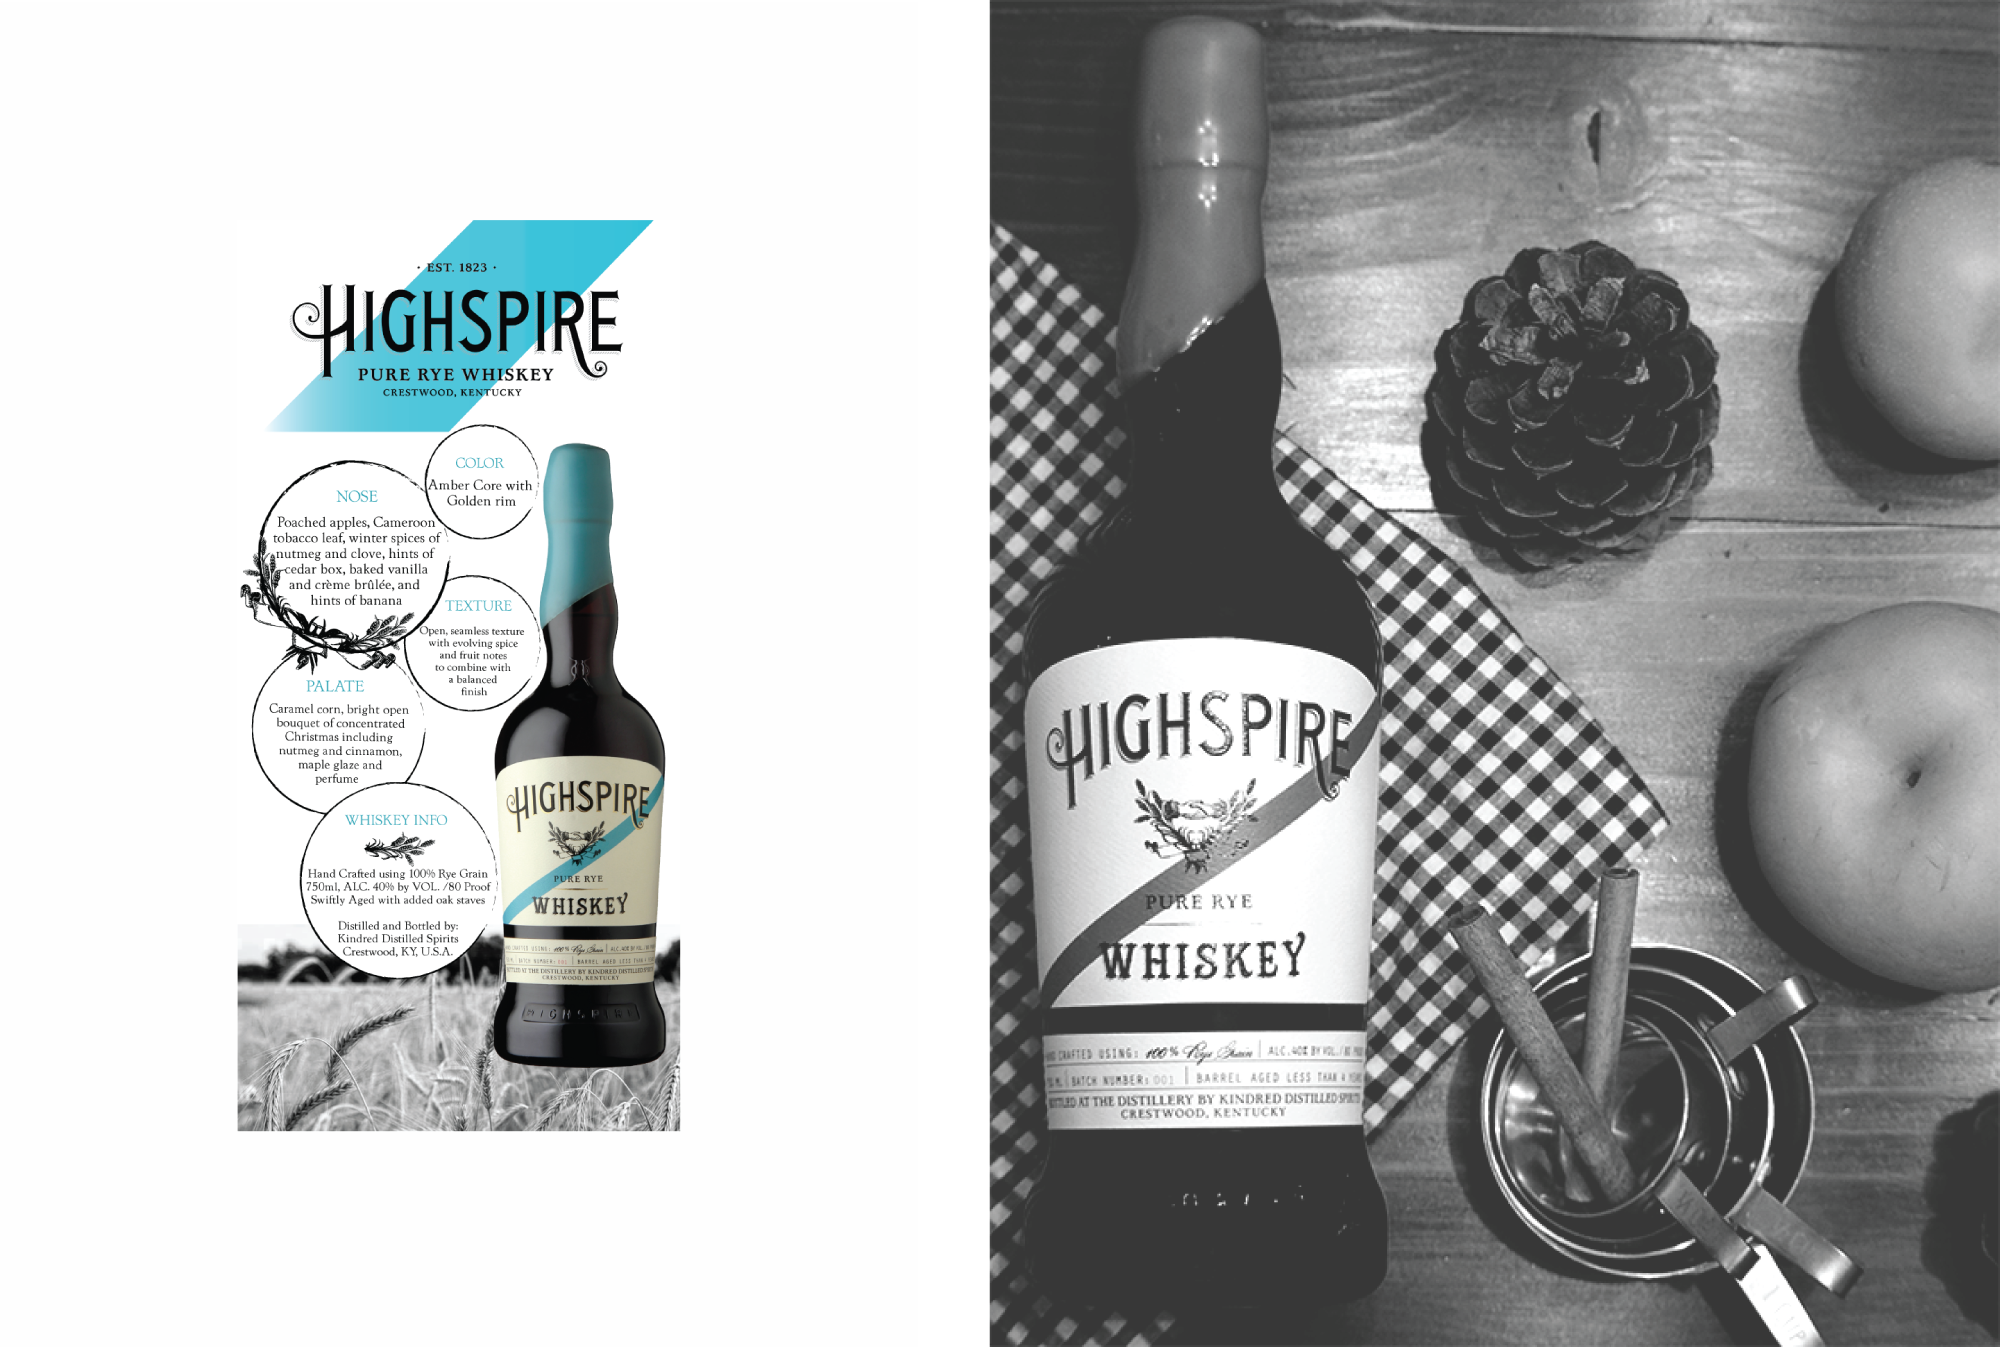 Graphic Design and Photography for Highspire Whiskey Spirits Brand by Amarie Design Co.